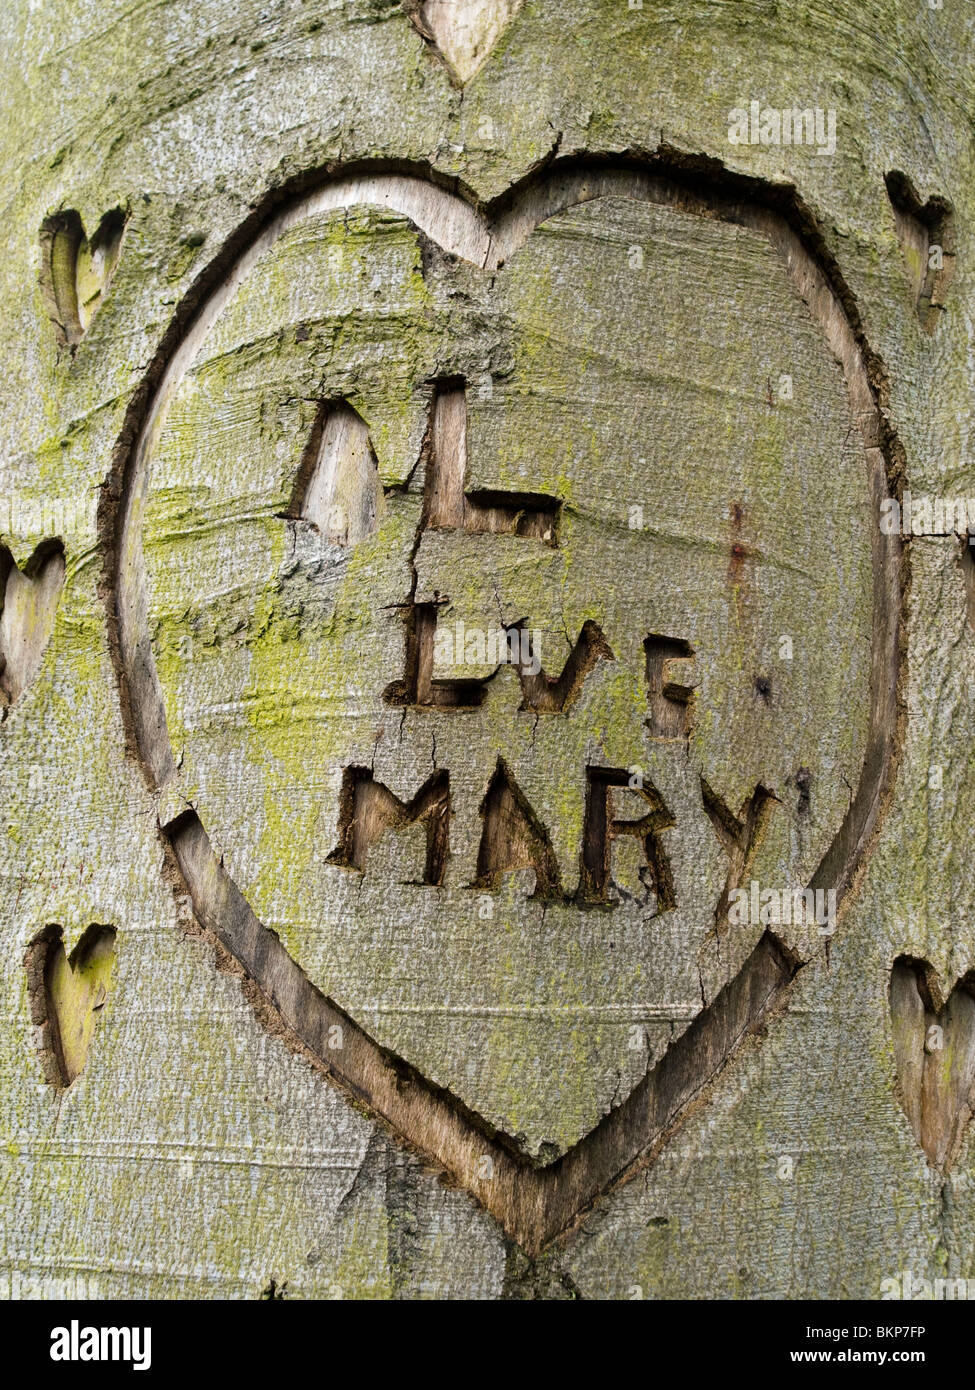 A love heart carved into a tree, Derbyshire England UK - Stock Image